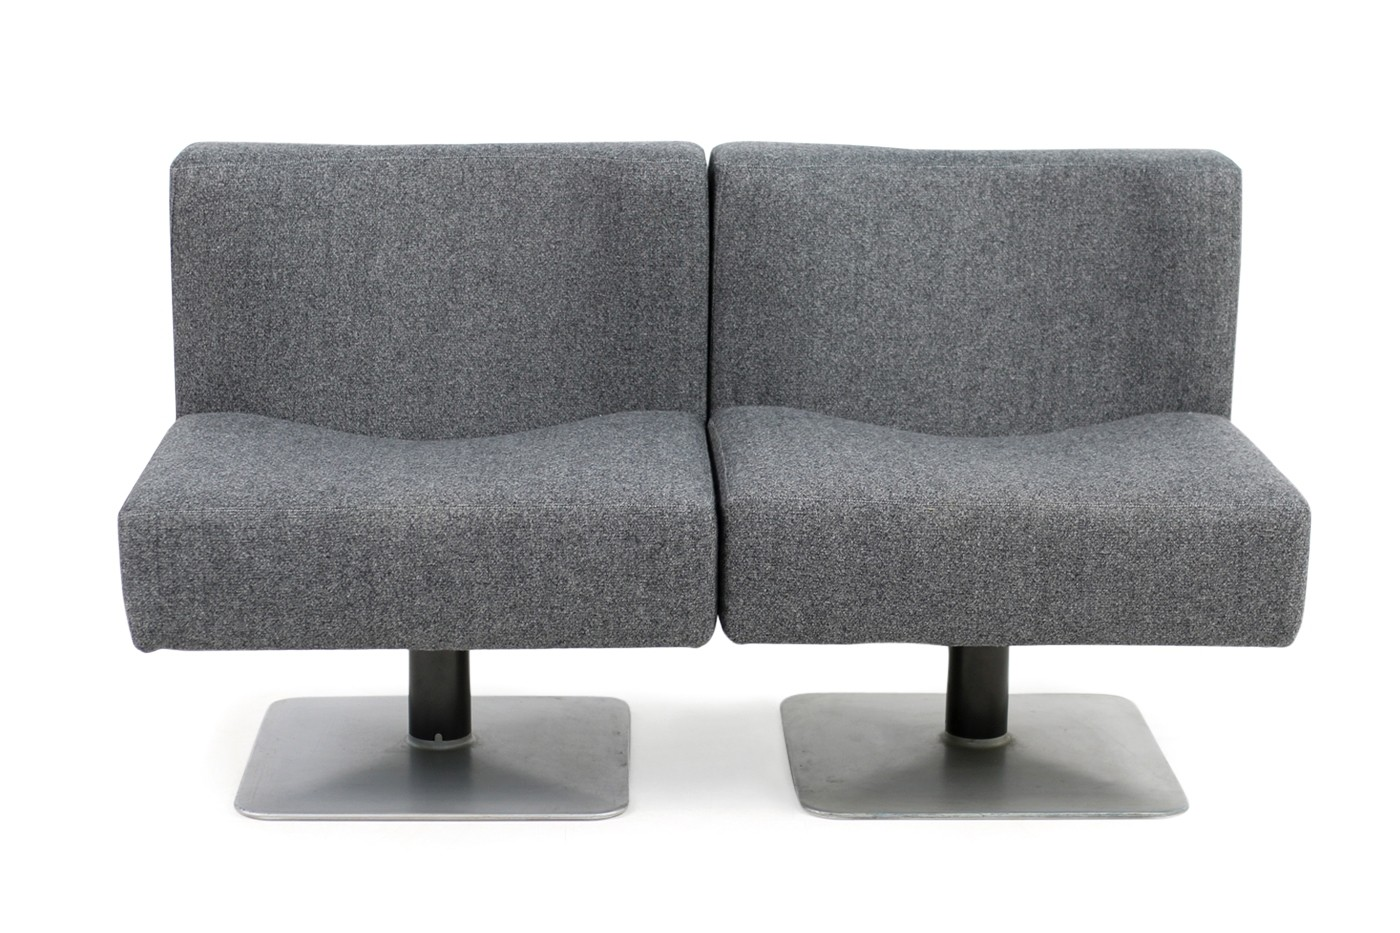 Pair Of 1970s Modular Lounge Chairs Herbert Hirche For